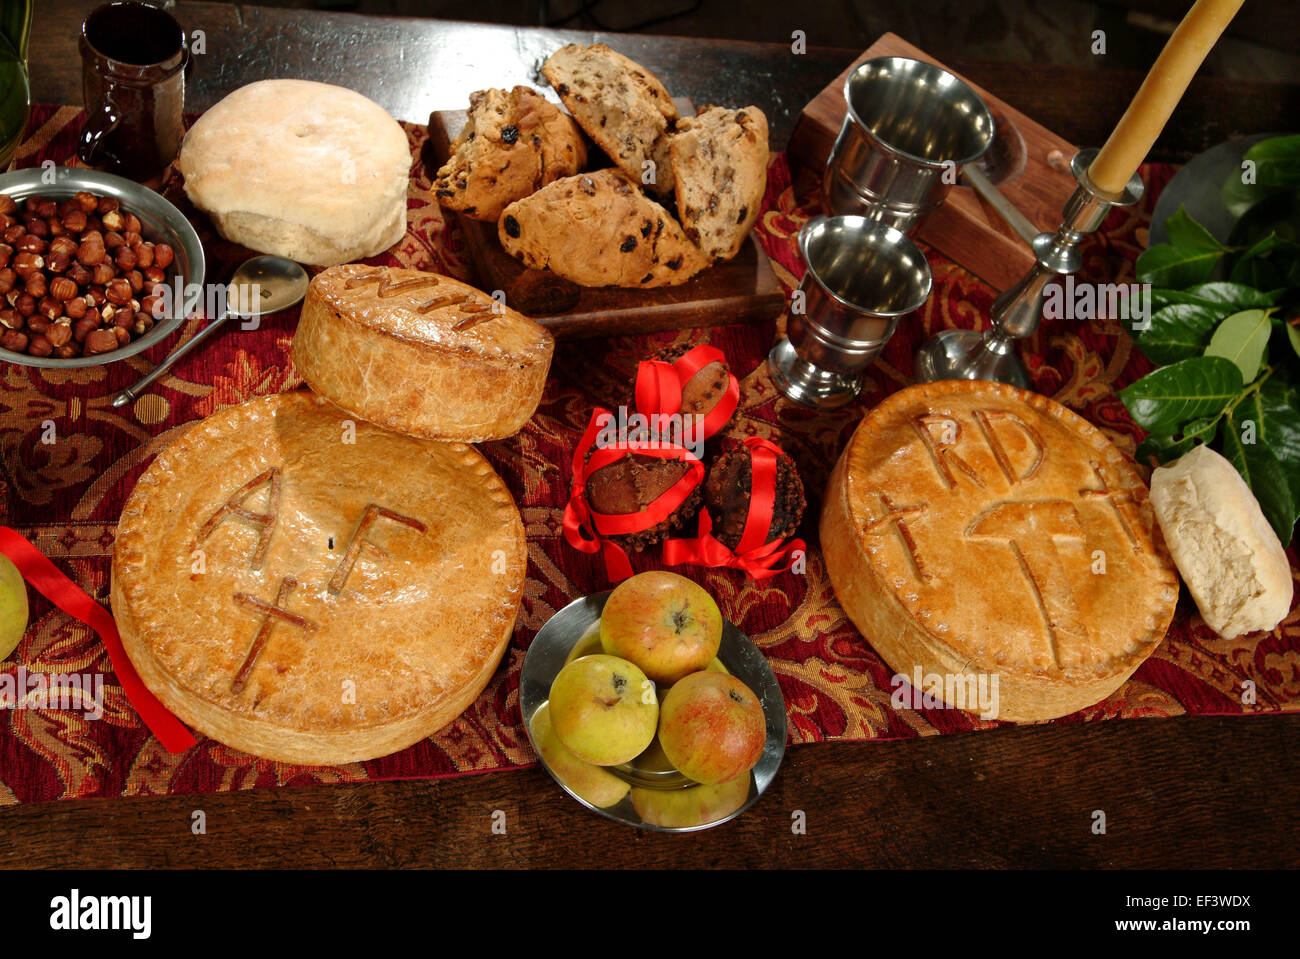 16th and 17th century foods of the tudor period with marchpane stock photo royalty free image